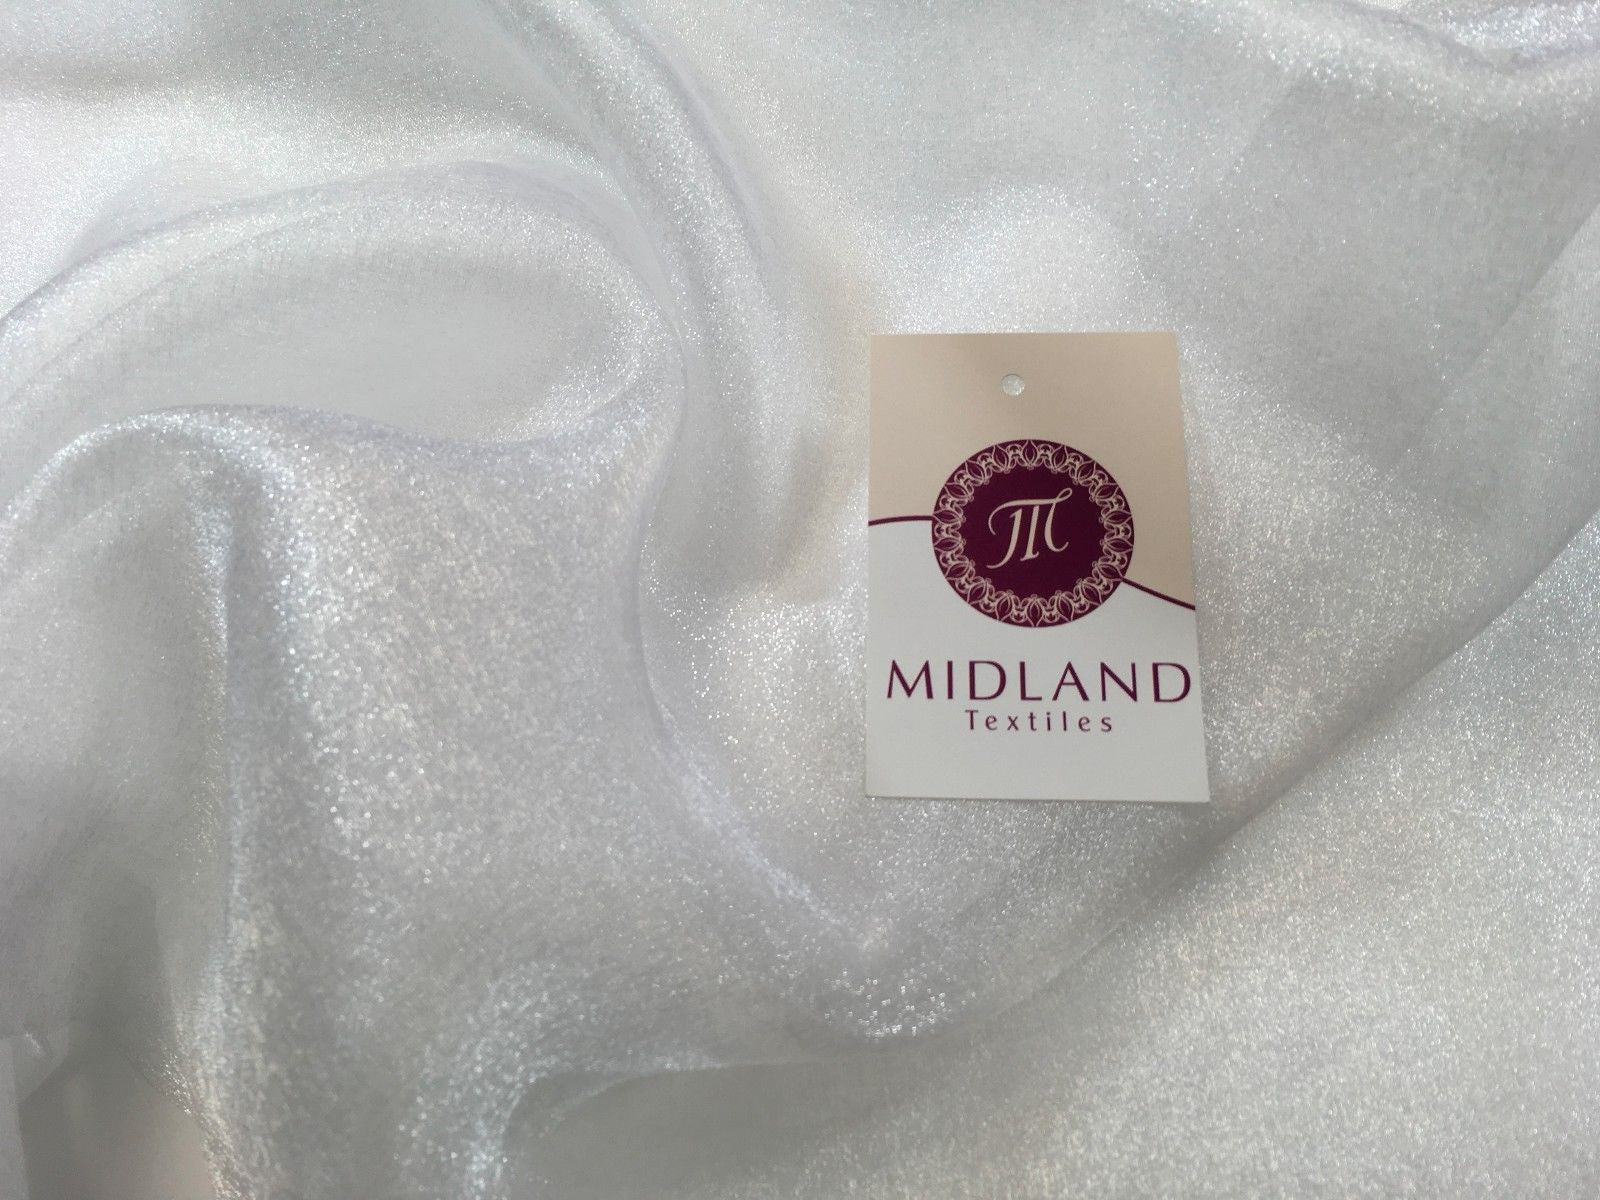 "CRYSTAL ORGANZA WEDDING BRIDAL DANCE VEIL DRESS FABRIC MATERIAL 45"" WIDE M111 - Midland Textiles & Fabric"